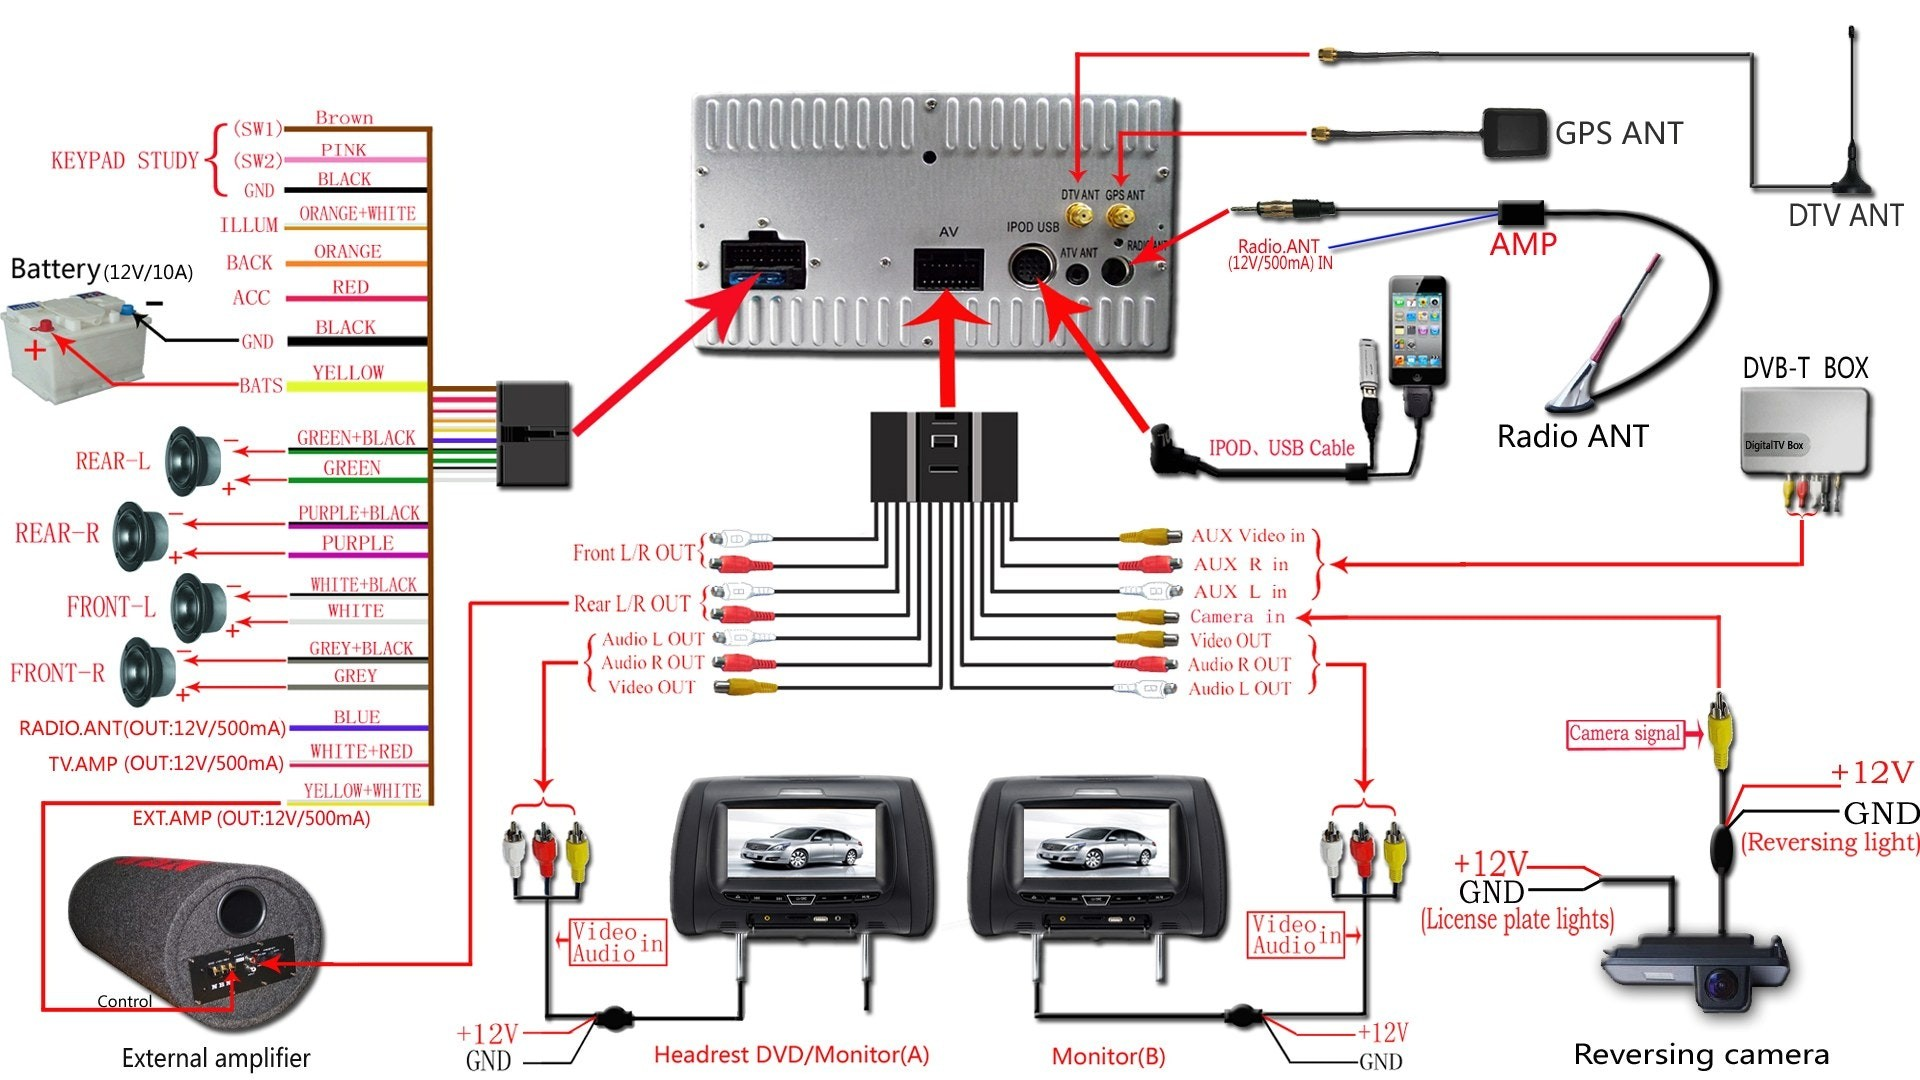 Wiring Diagram For Alpine Car Stereo Plete Kenworth Radio Impression Color Of Related Post